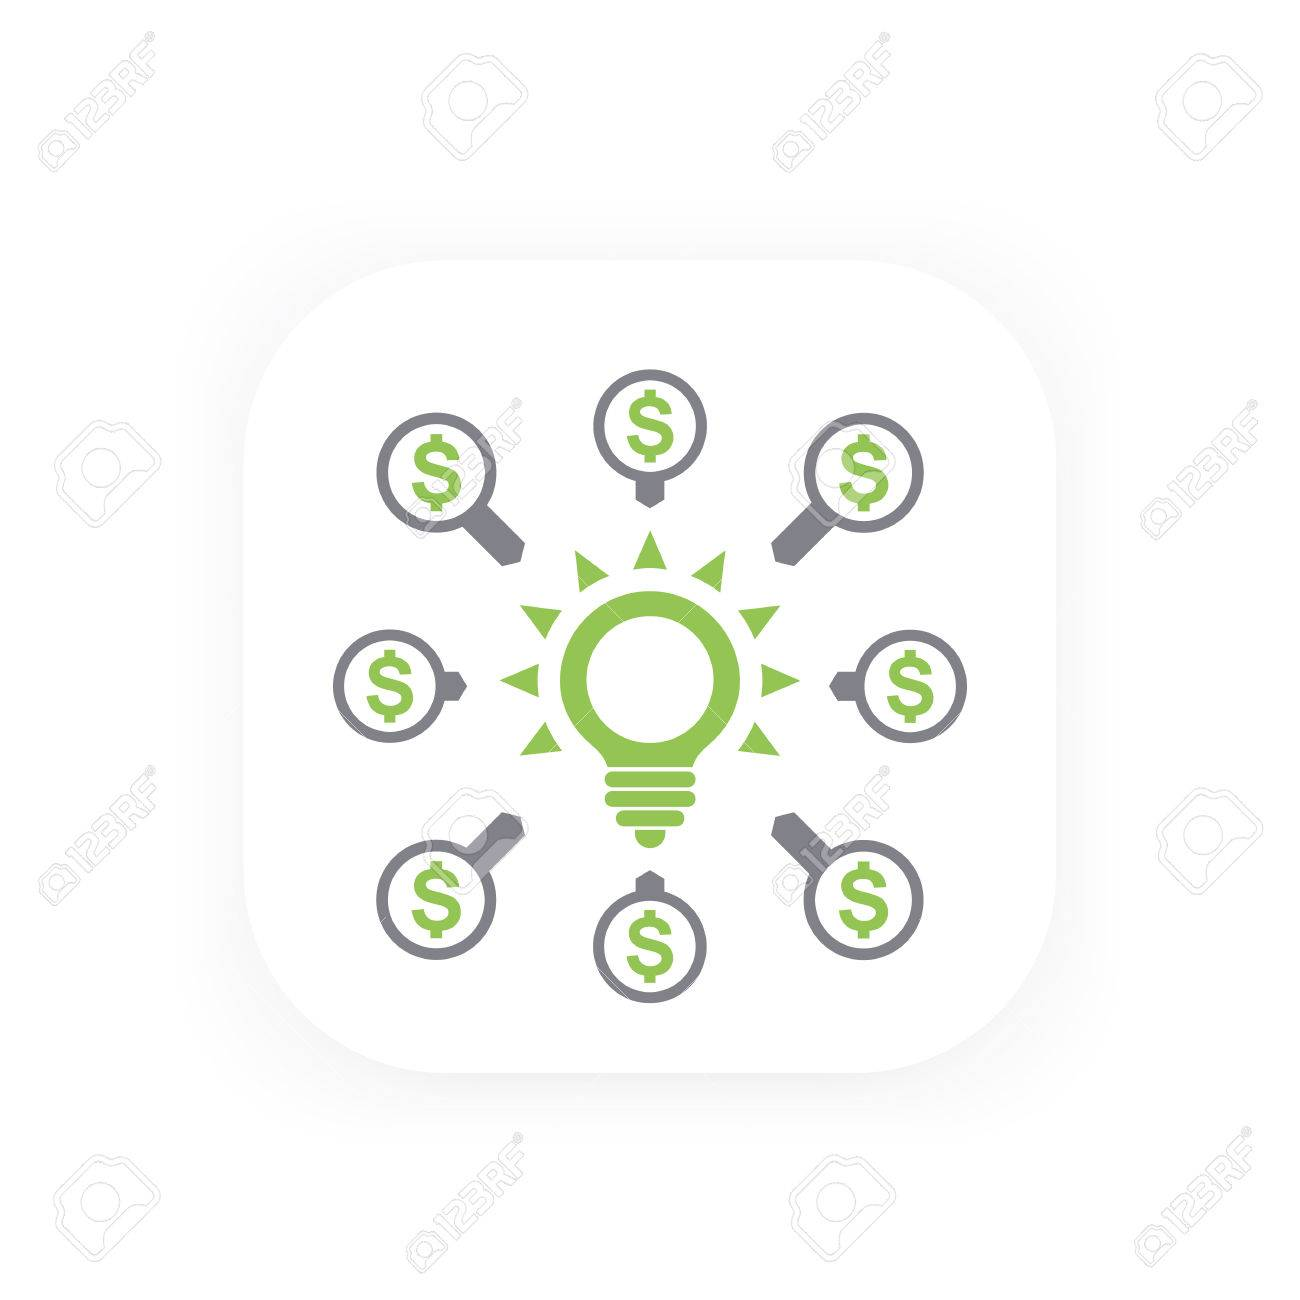 crowdfunding contributions icon royalty free cliparts vectors and